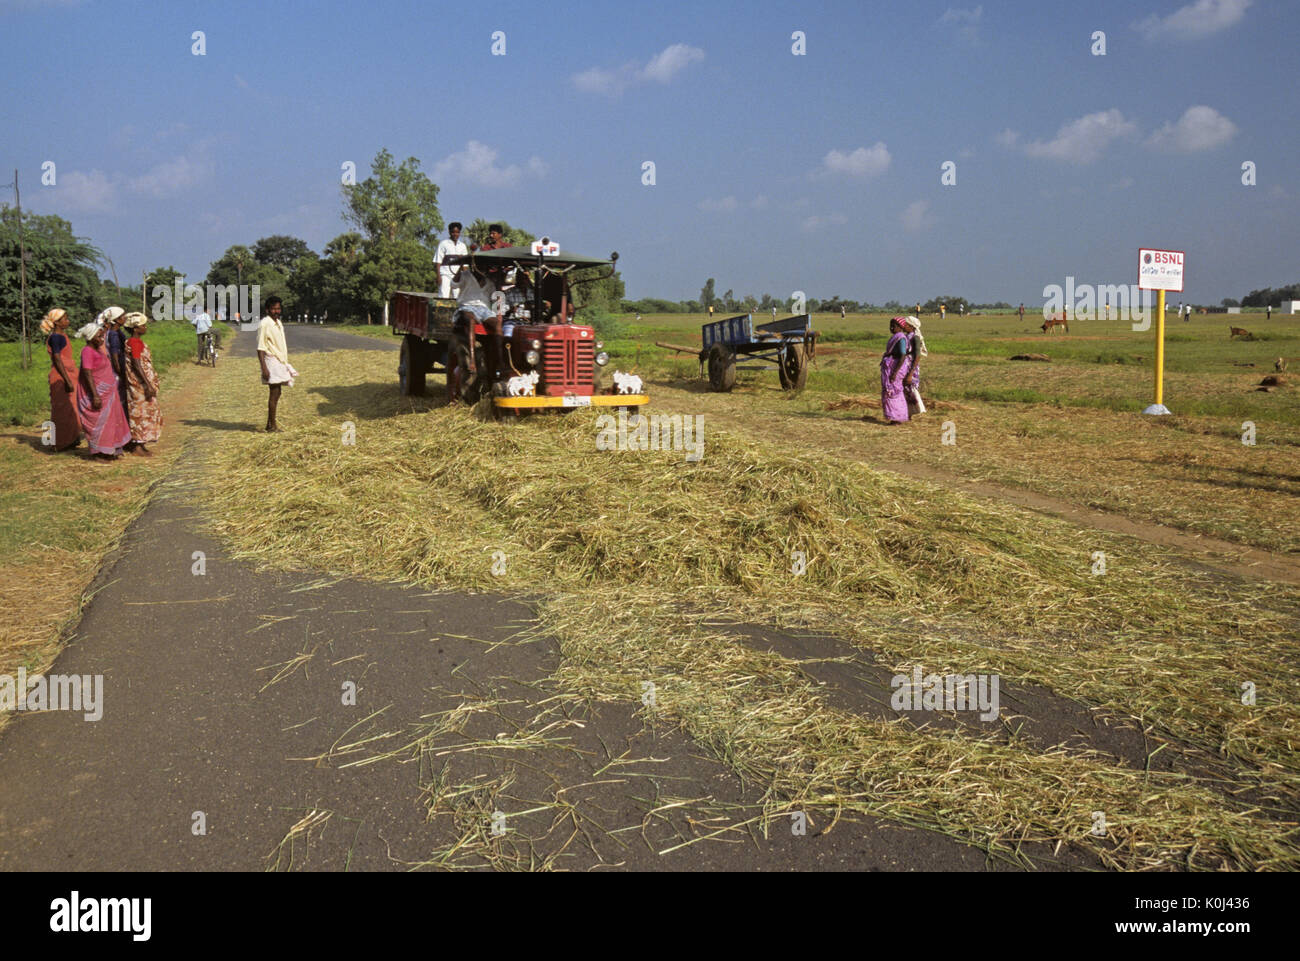 Tamil Nadu Farmers Stock Photos & Tamil Nadu Farmers Stock